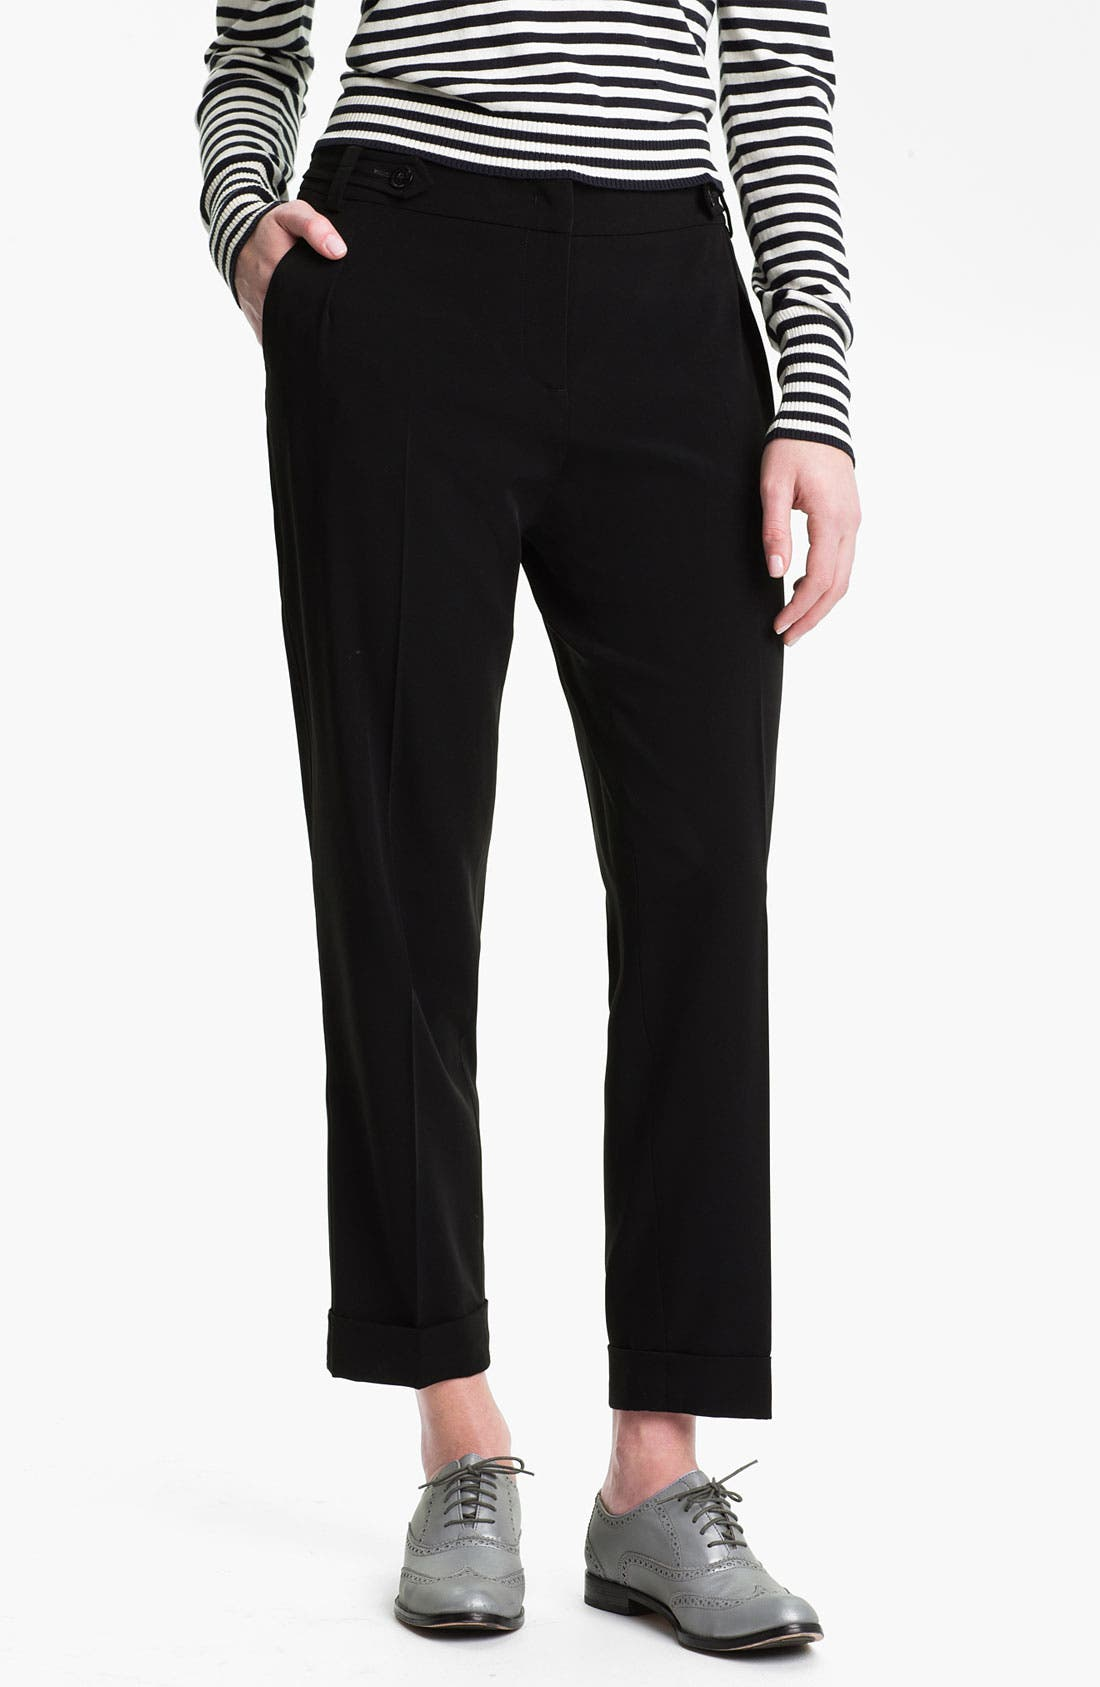 Alternate Image 1 Selected - Weekend Max Mara 'Gerona' Slim Ankle Pants